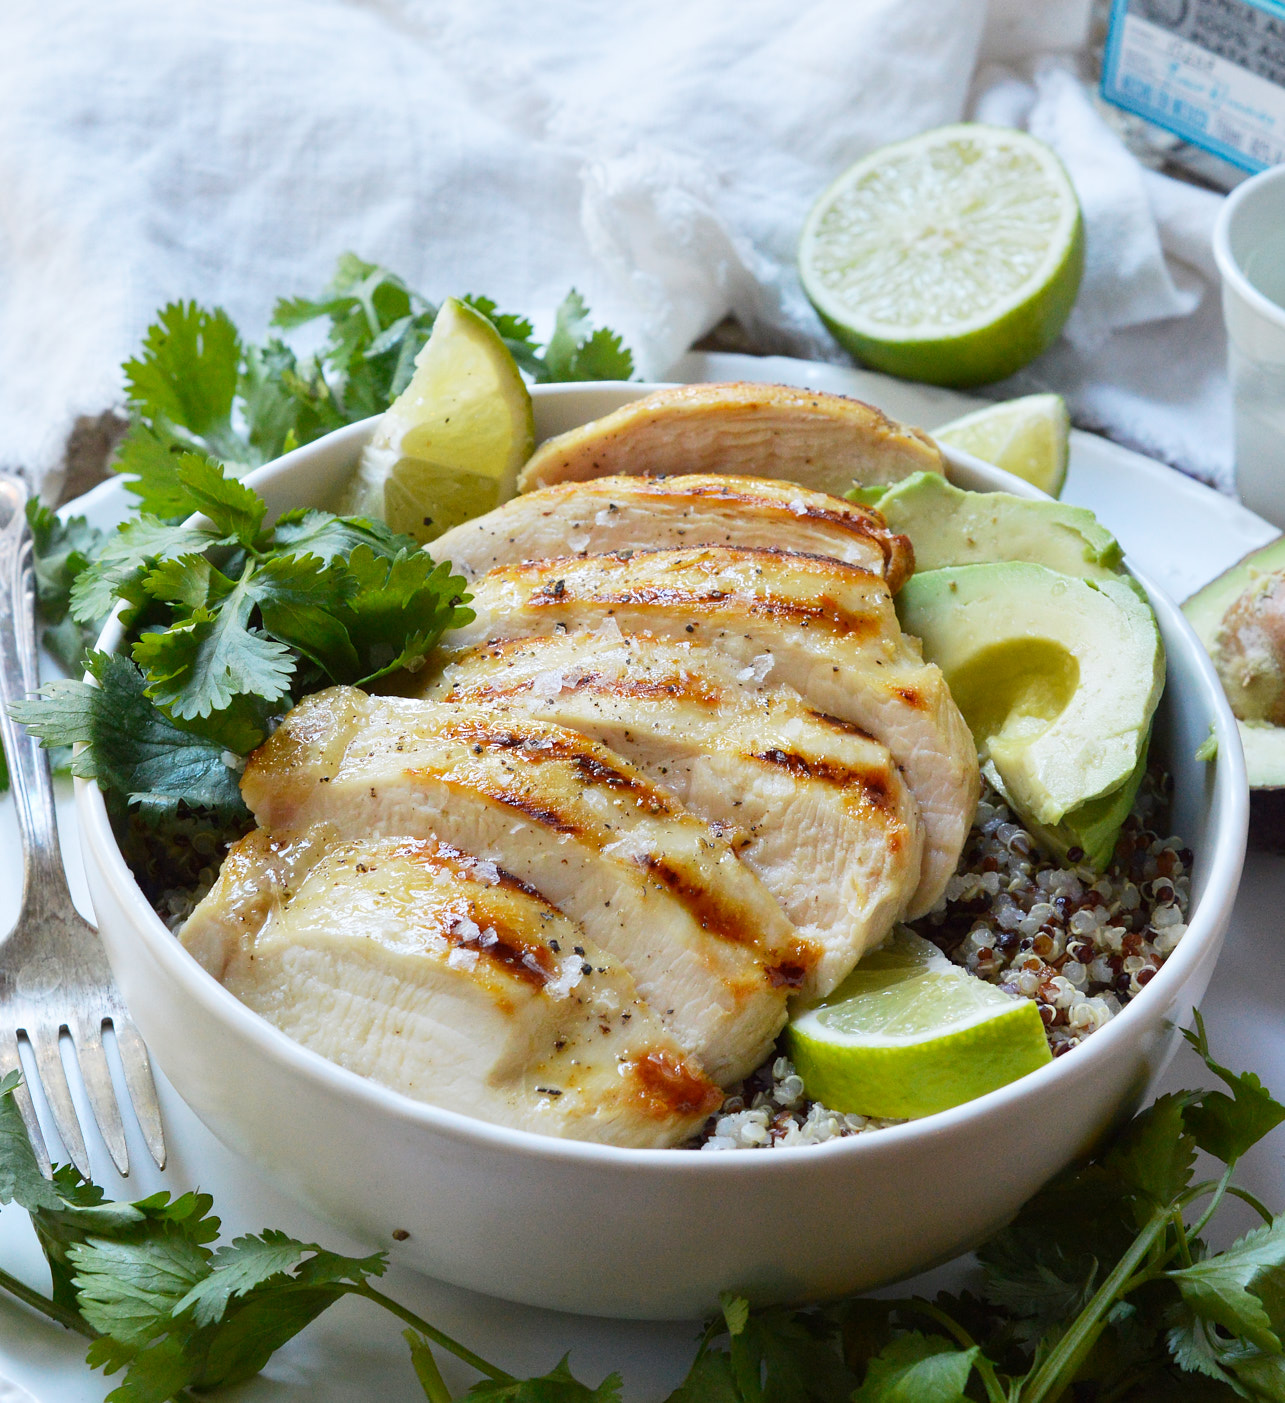 sliced tequila lime chicken breast over quinoa with limes, cilantro and avocado on the side